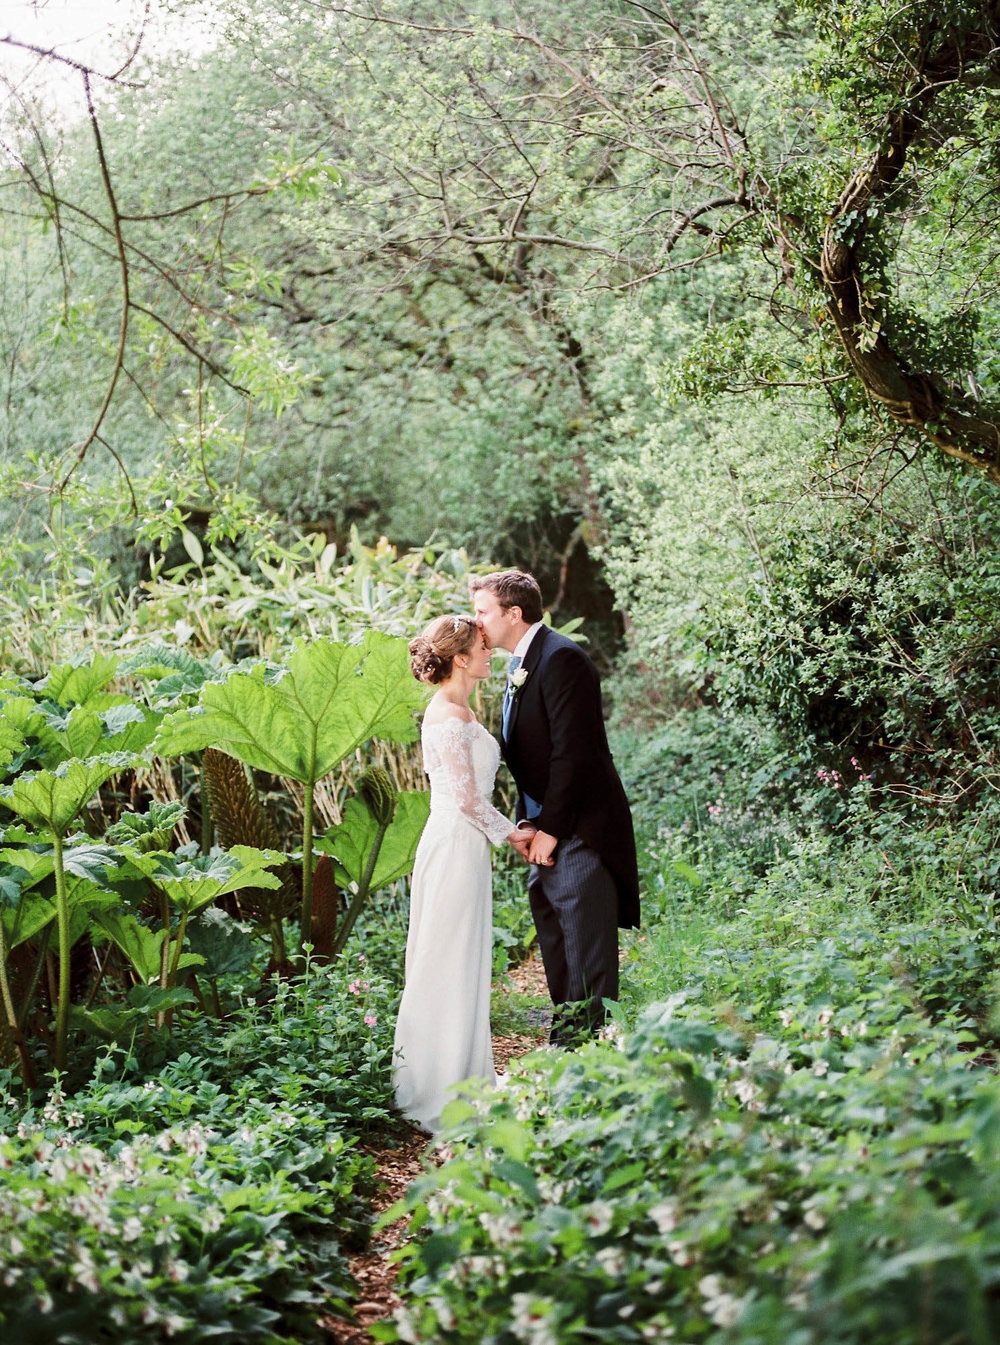 Amy O'Boyle Photography- Destination & UK Fine Art Film Wedding Photographer- English Countryside Wedding-13.jpg